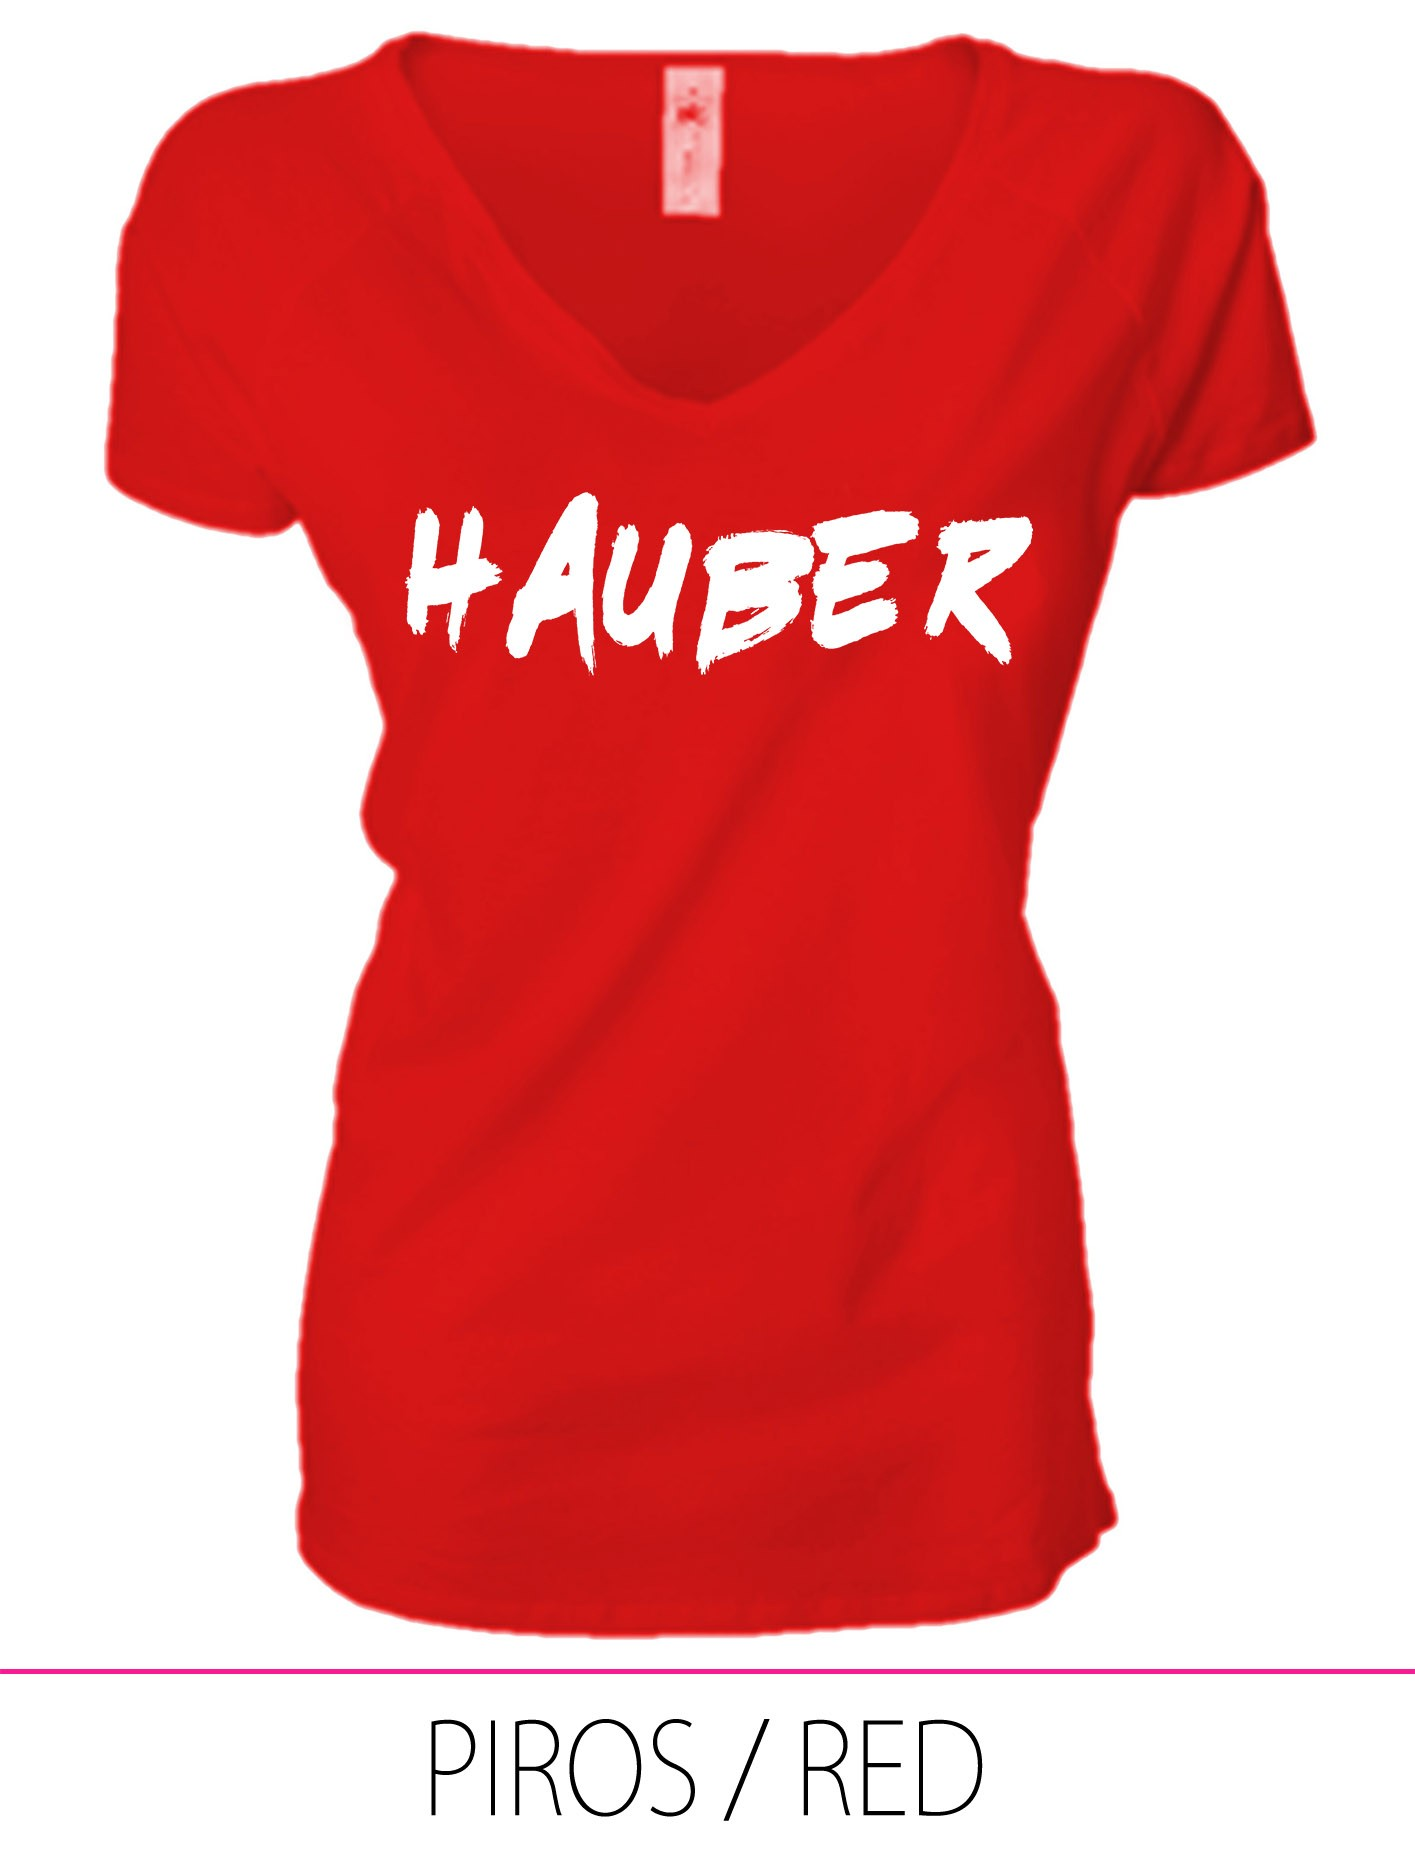 LADIES PREMIUM V NECK T-SHIRT HAUBER RED